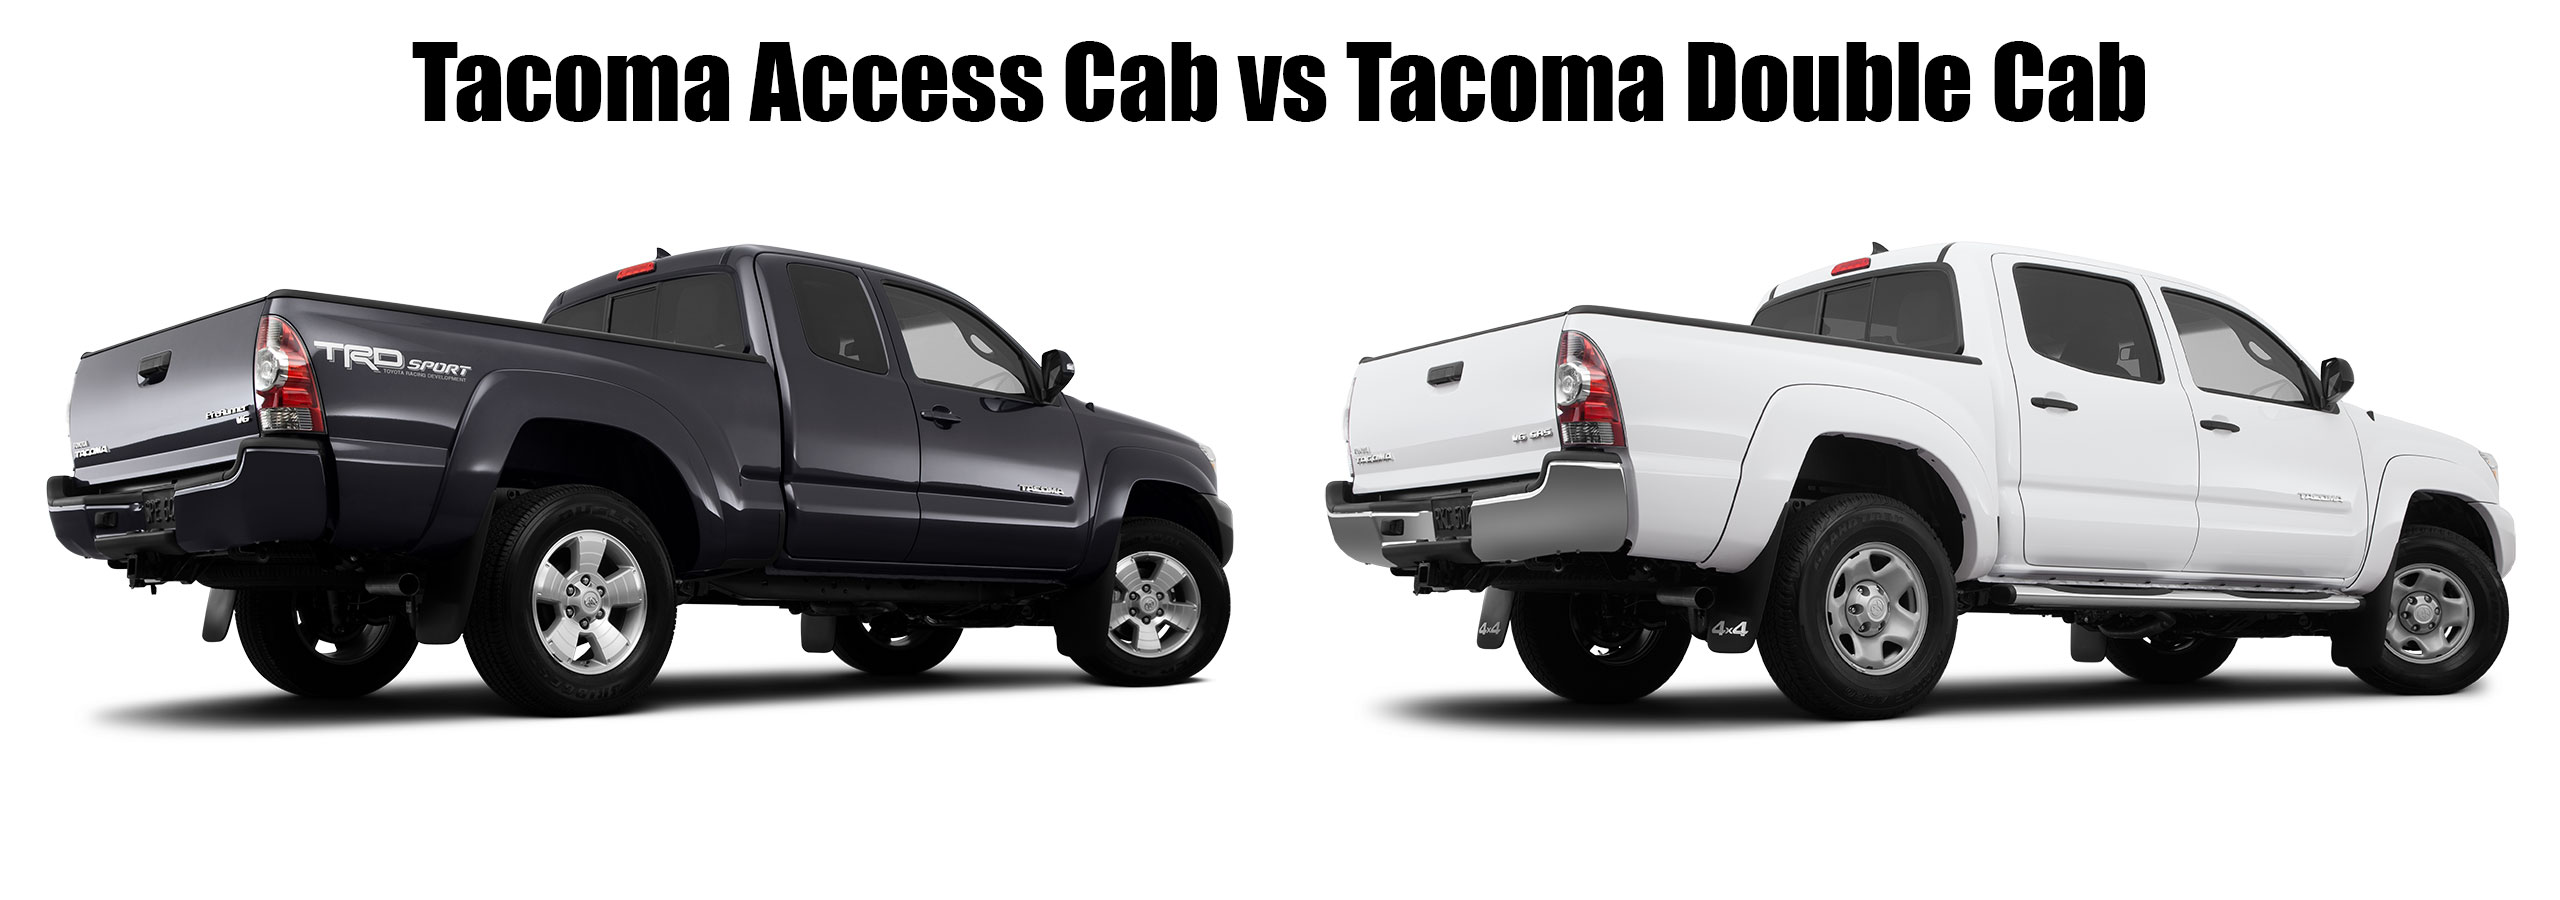 What s The Difference Between A Ta a Access and Double Cab